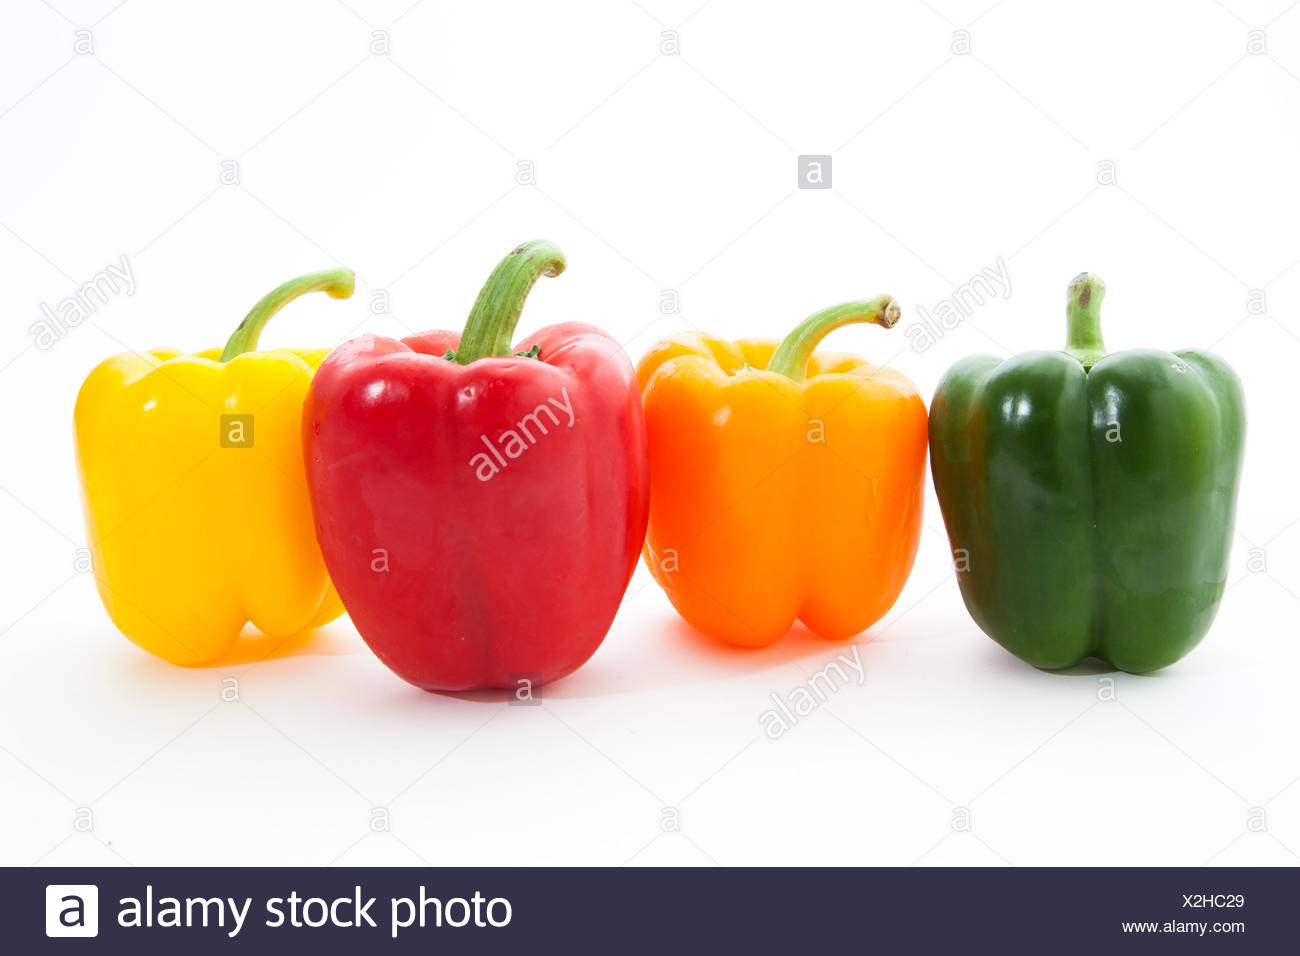 Multi-colored Bell Peppers in a row - Stock Image